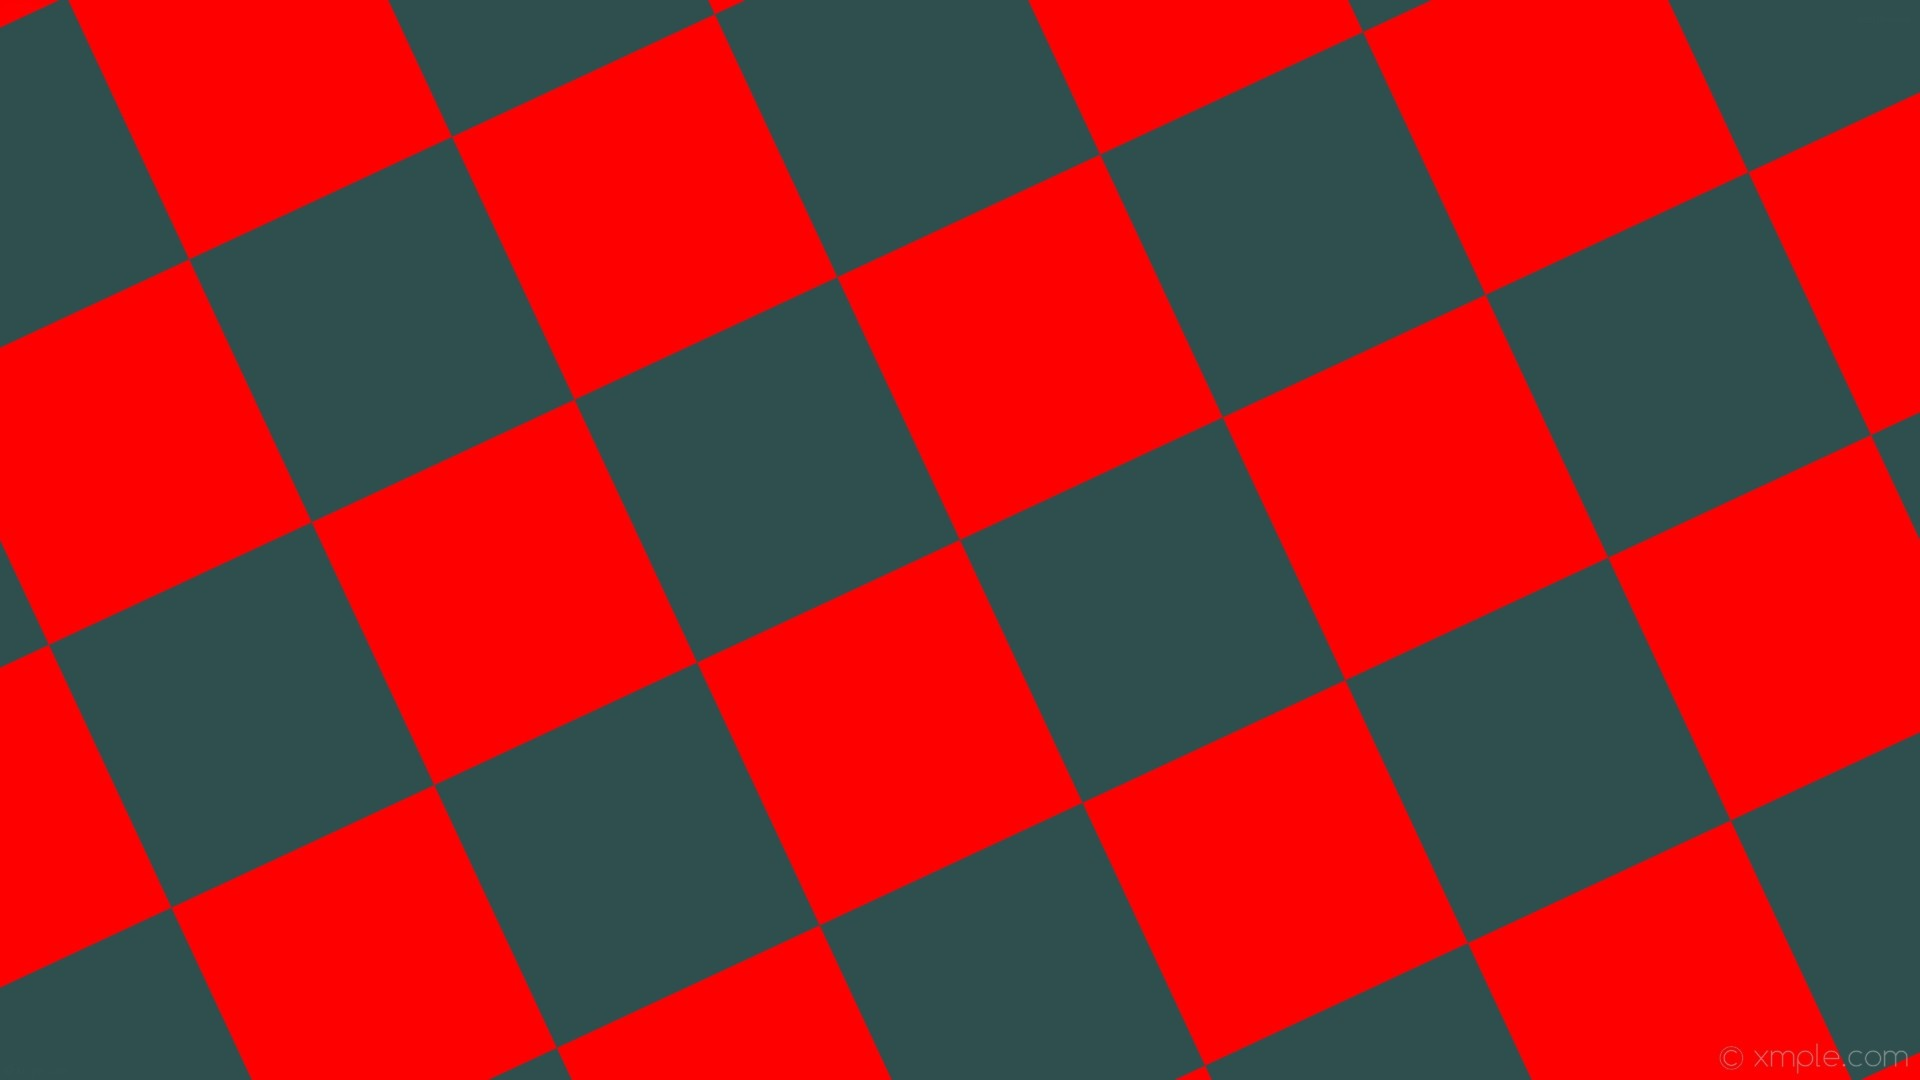 Checkered hd wallpaper download